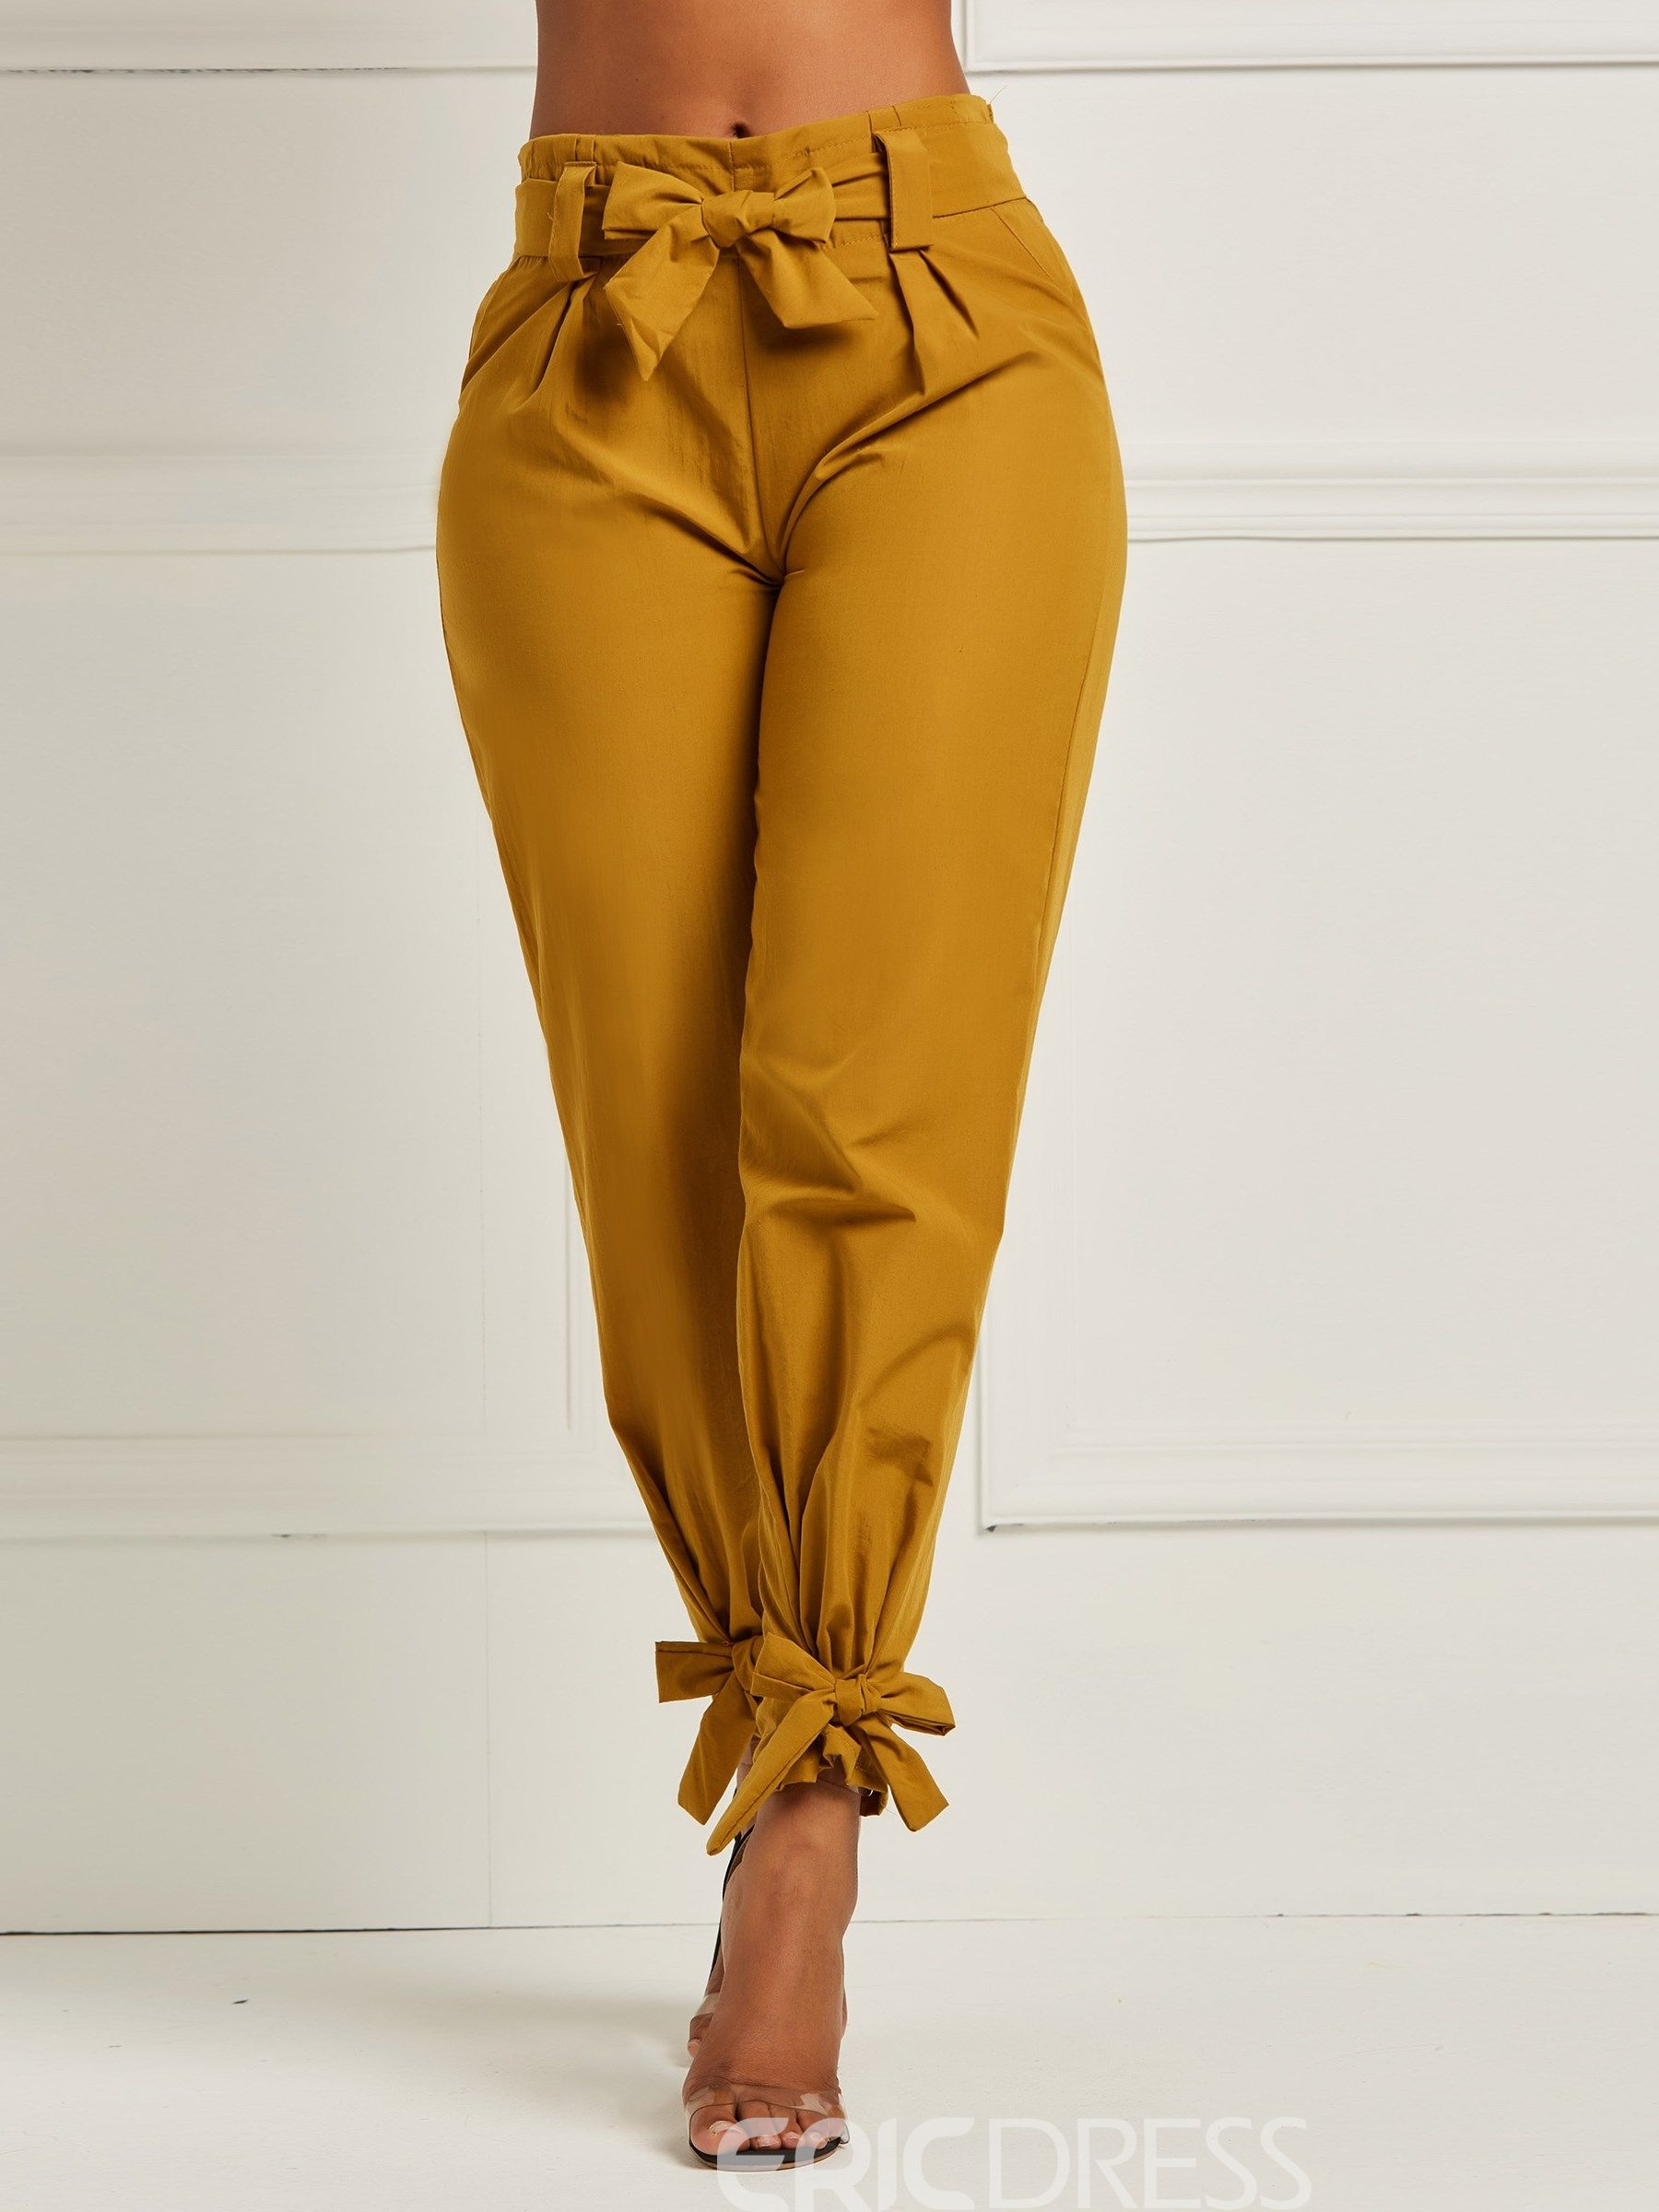 002a68793c5 Ericdress Bowknot Plain Women s Pencil Pants